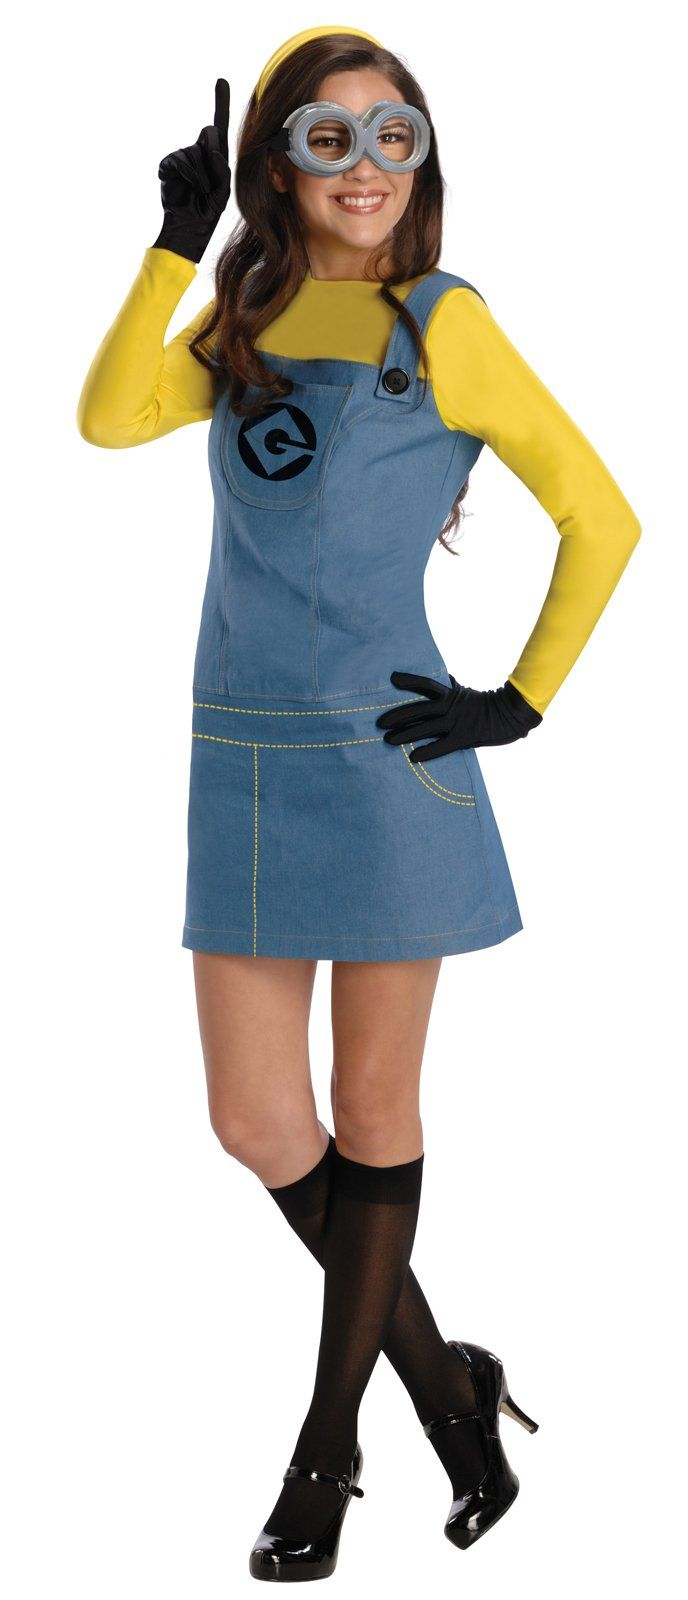 minion costume- if i ever need a halloween costume